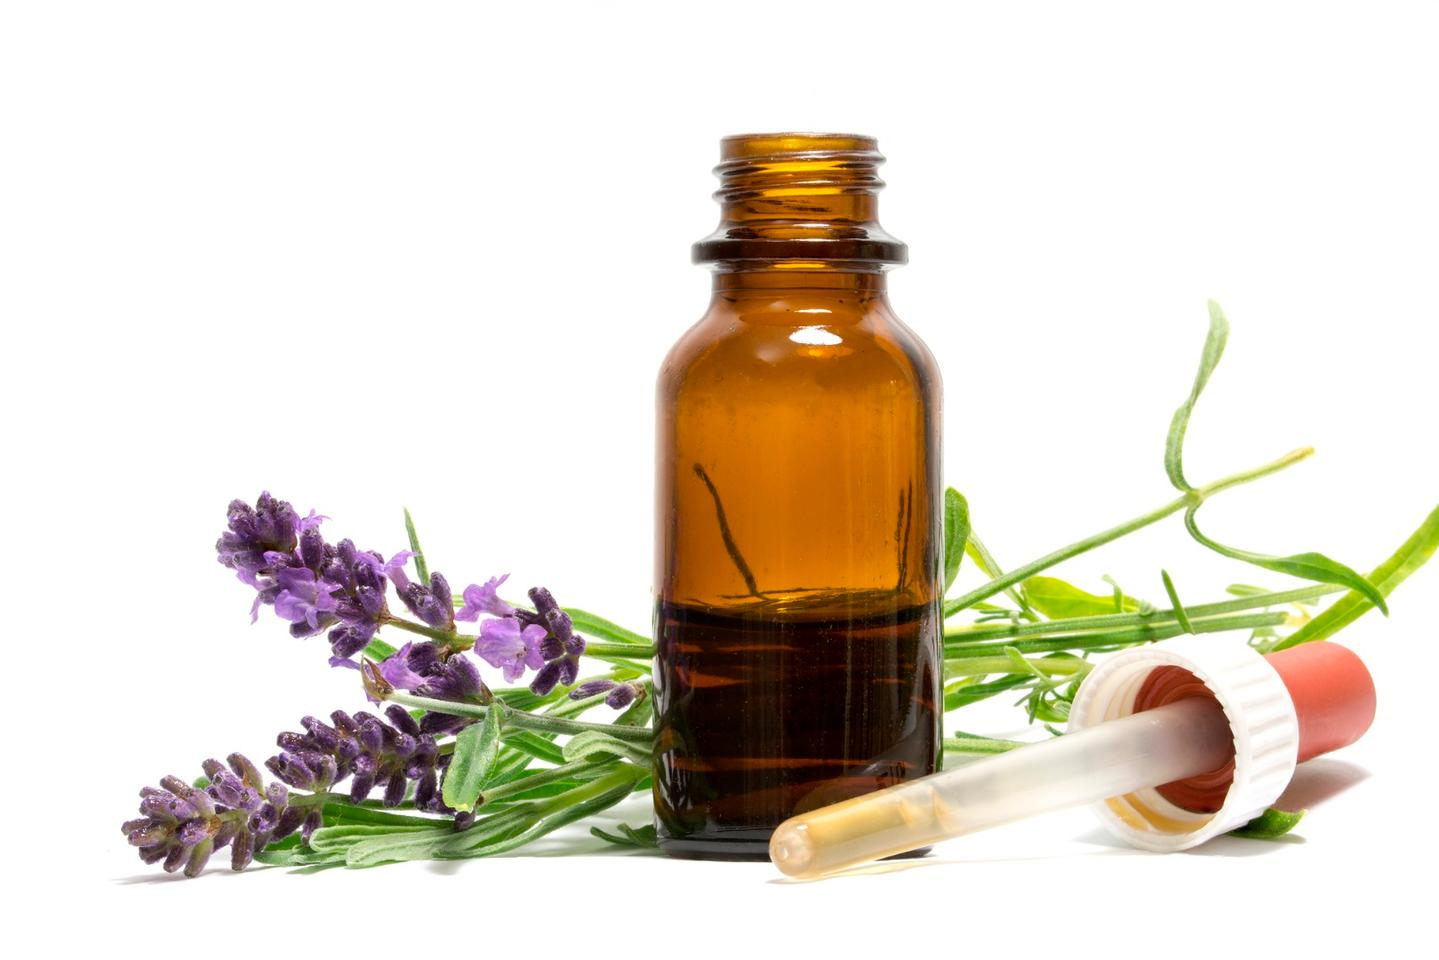 New research suggests lavender and tea tree oils could contain chemicals that disrupt our endocrine system